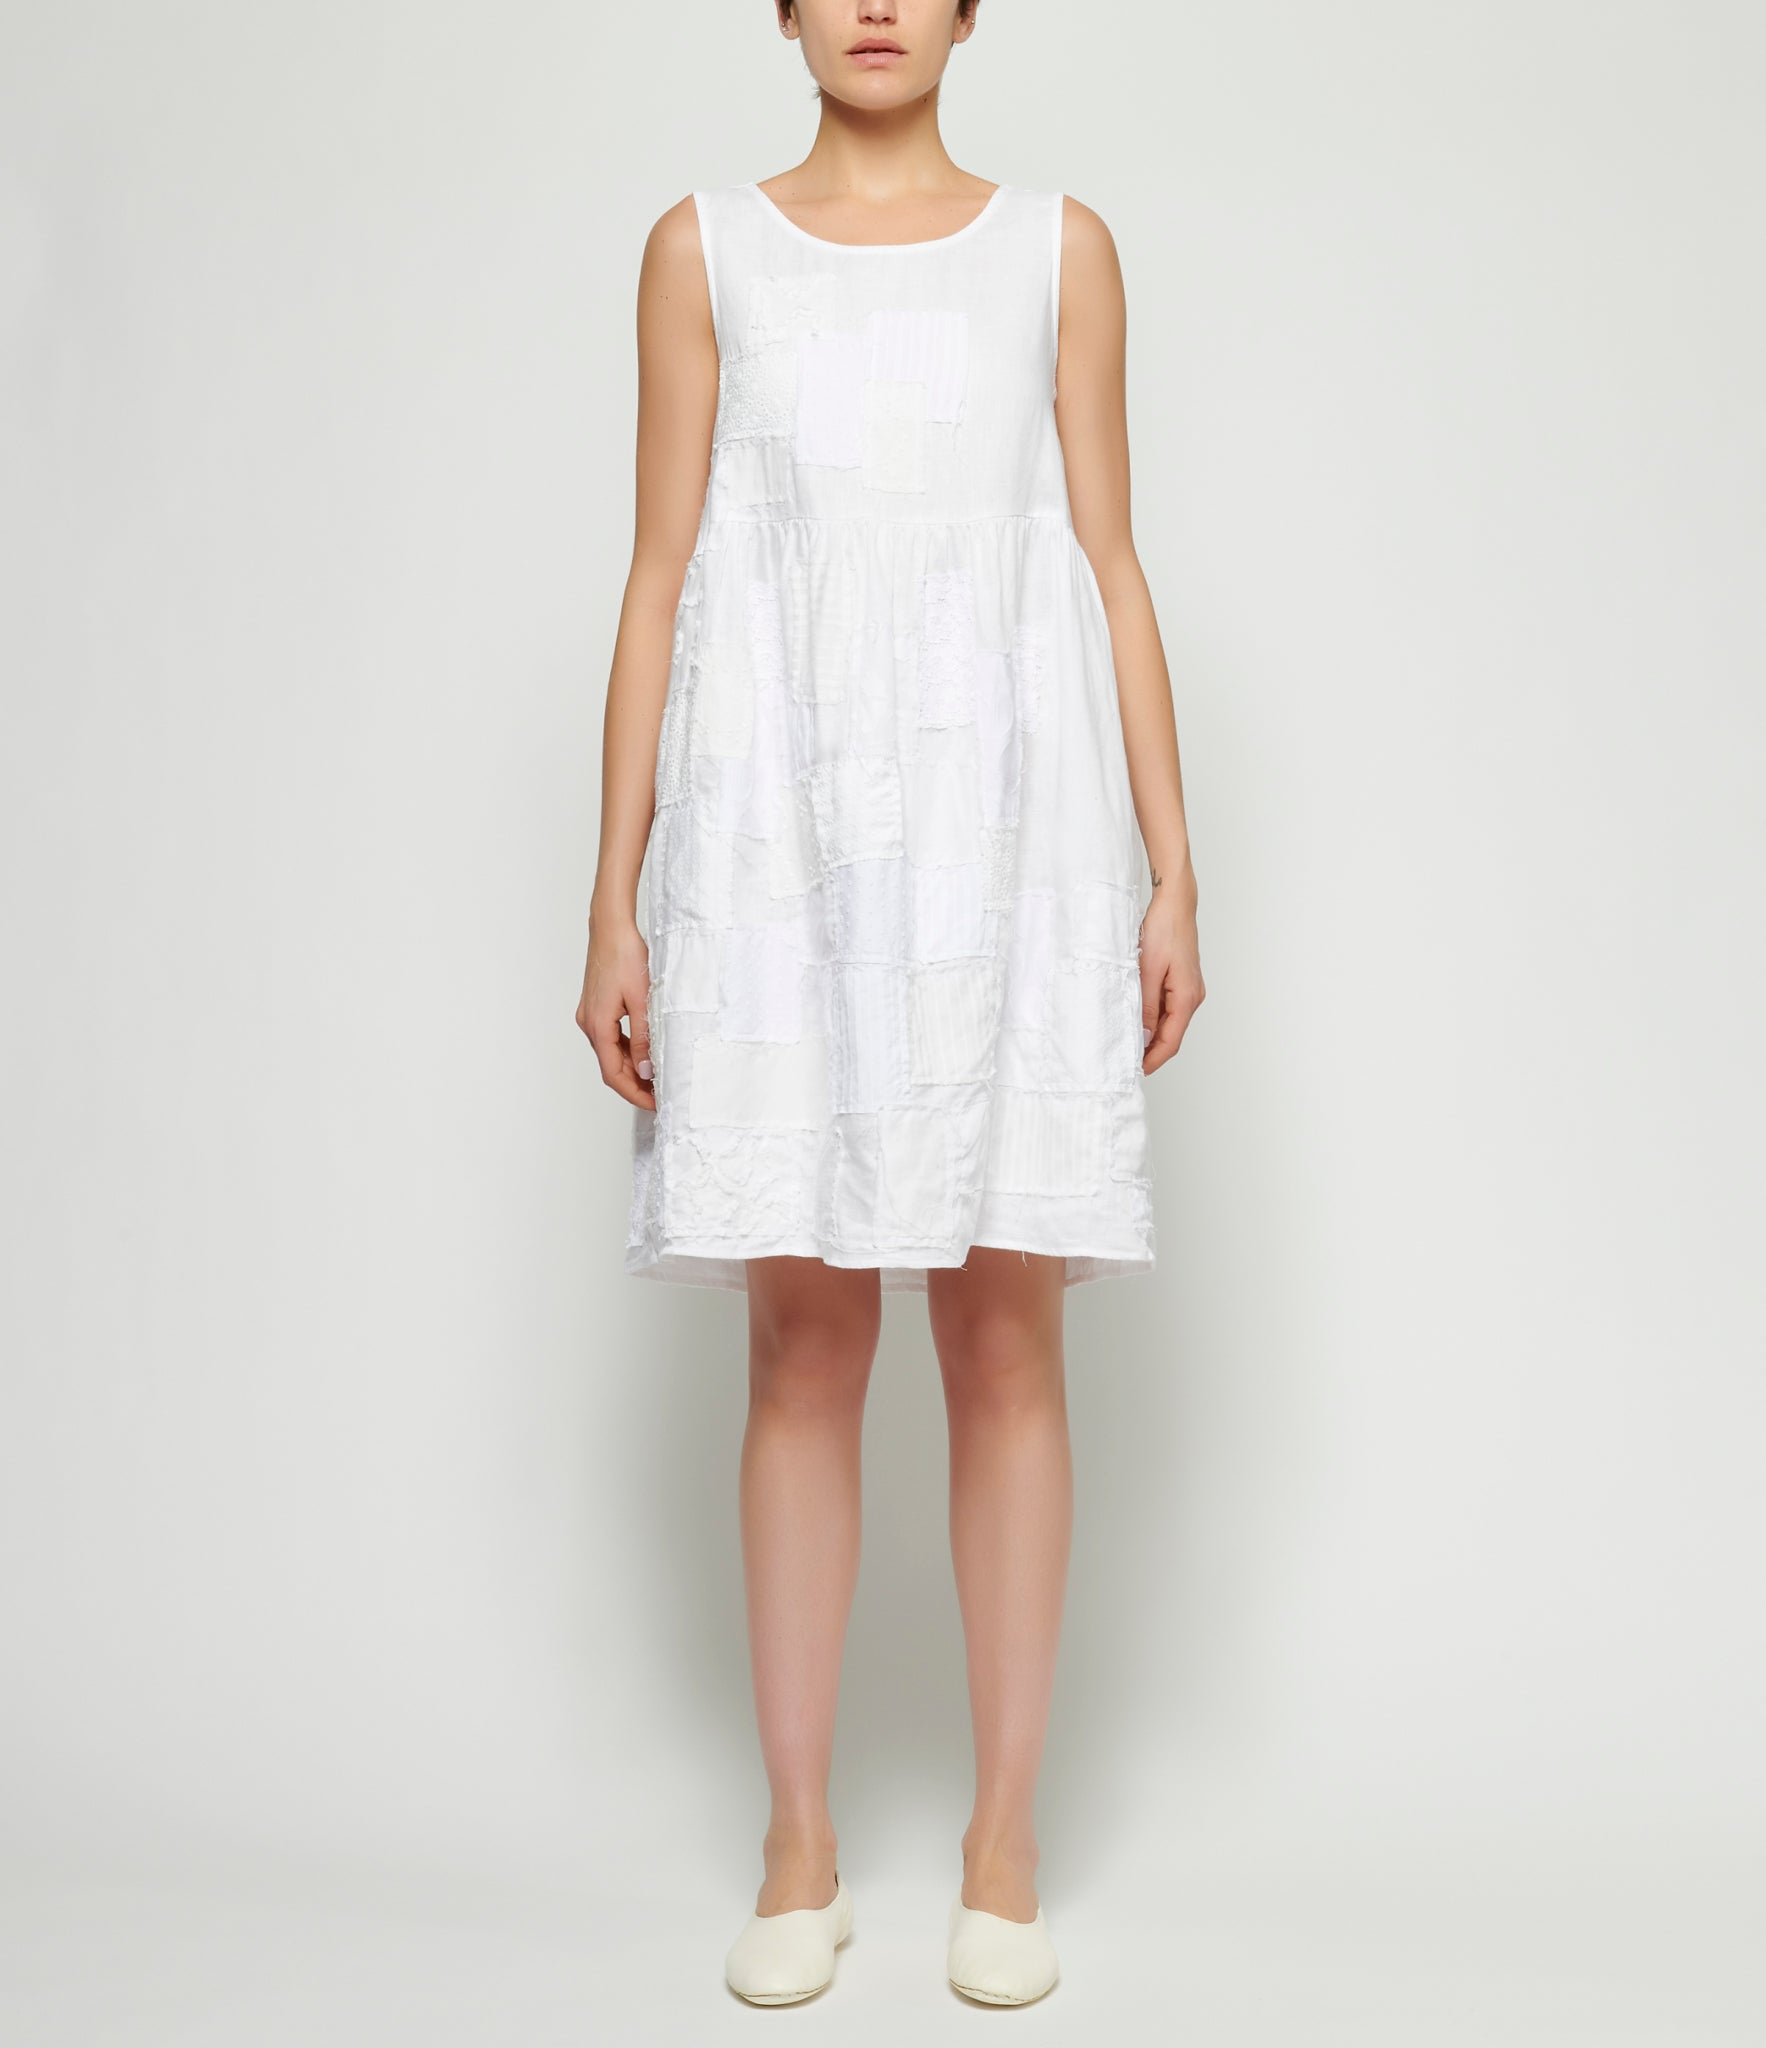 PHOS PHORO White Patchwork Appliqued Dress